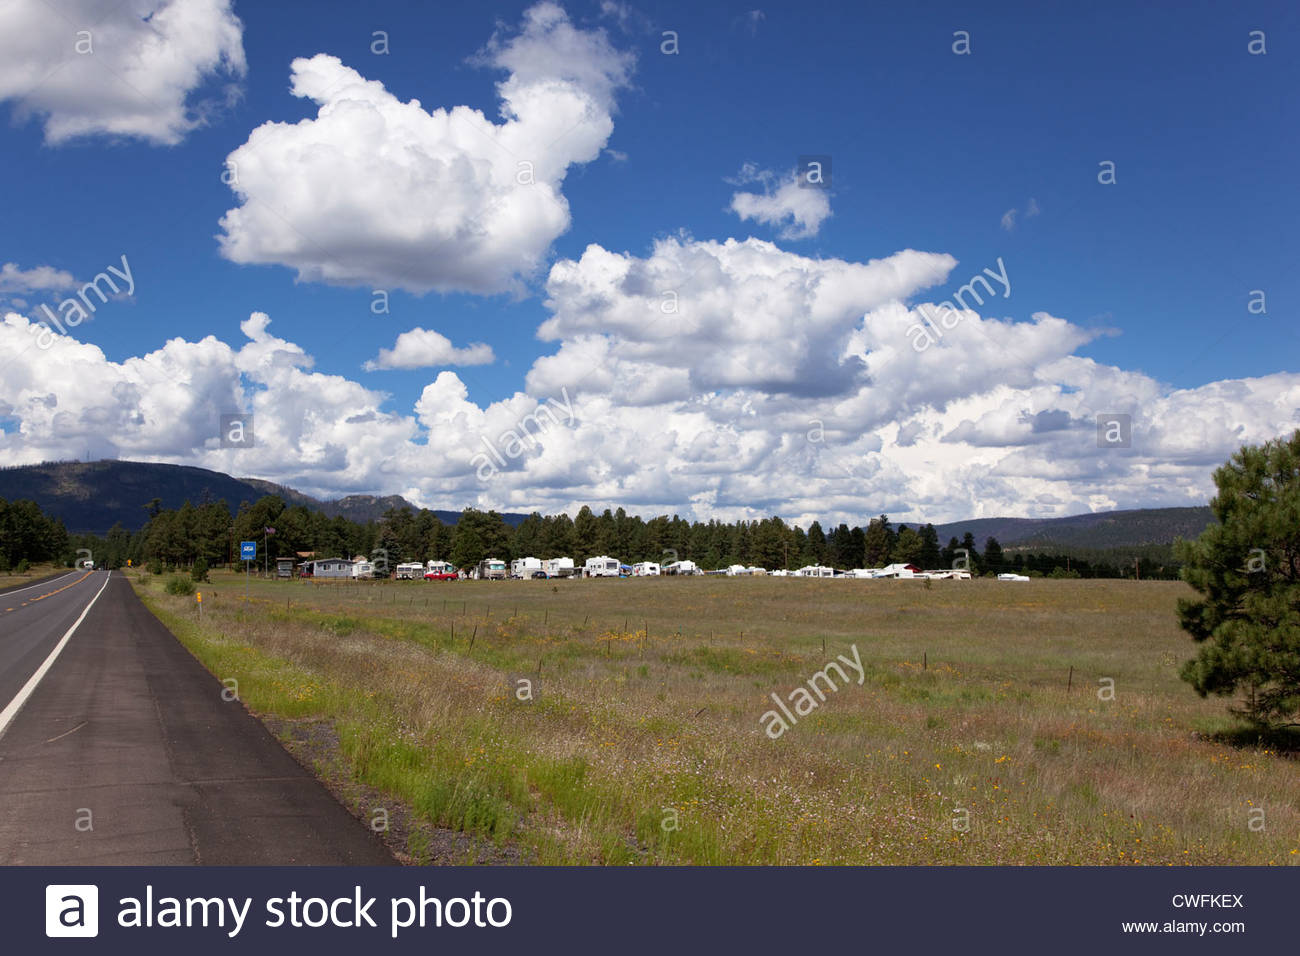 Outpost RV Trailer Park Alpine Arizona Stock Photo